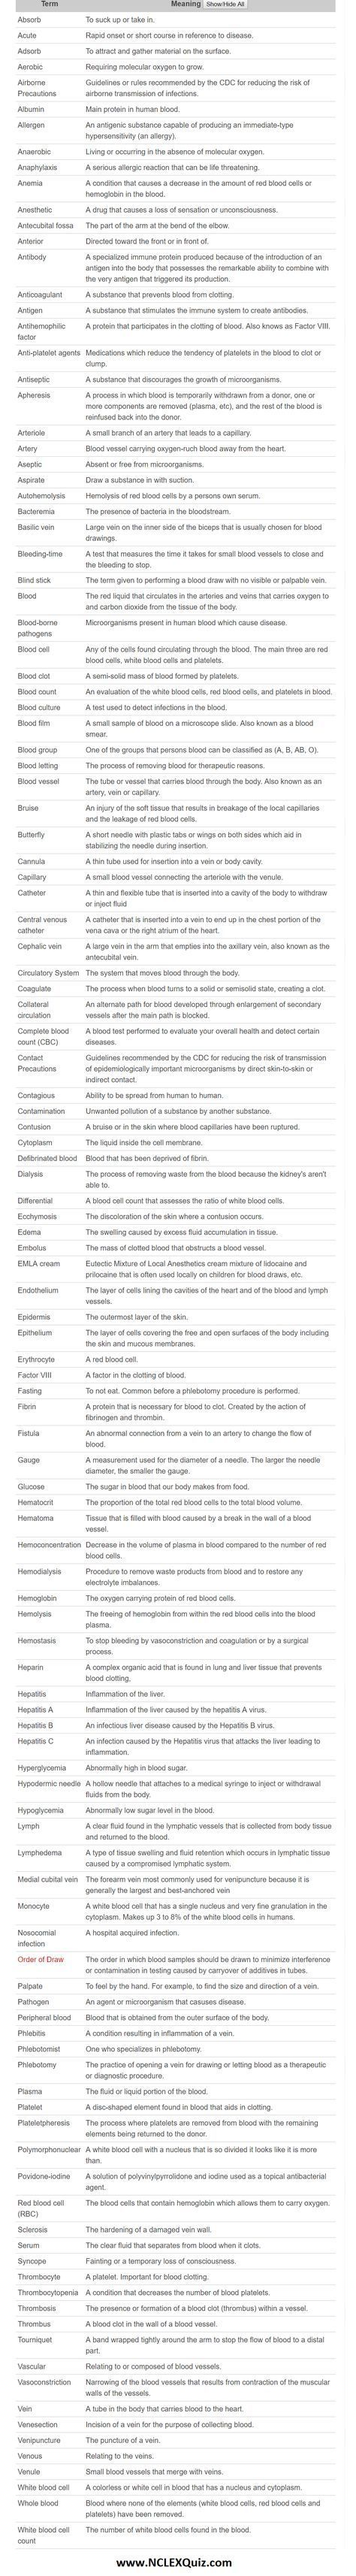 Phlebotomy Terminology List Below Is A List Of The Most Commonly